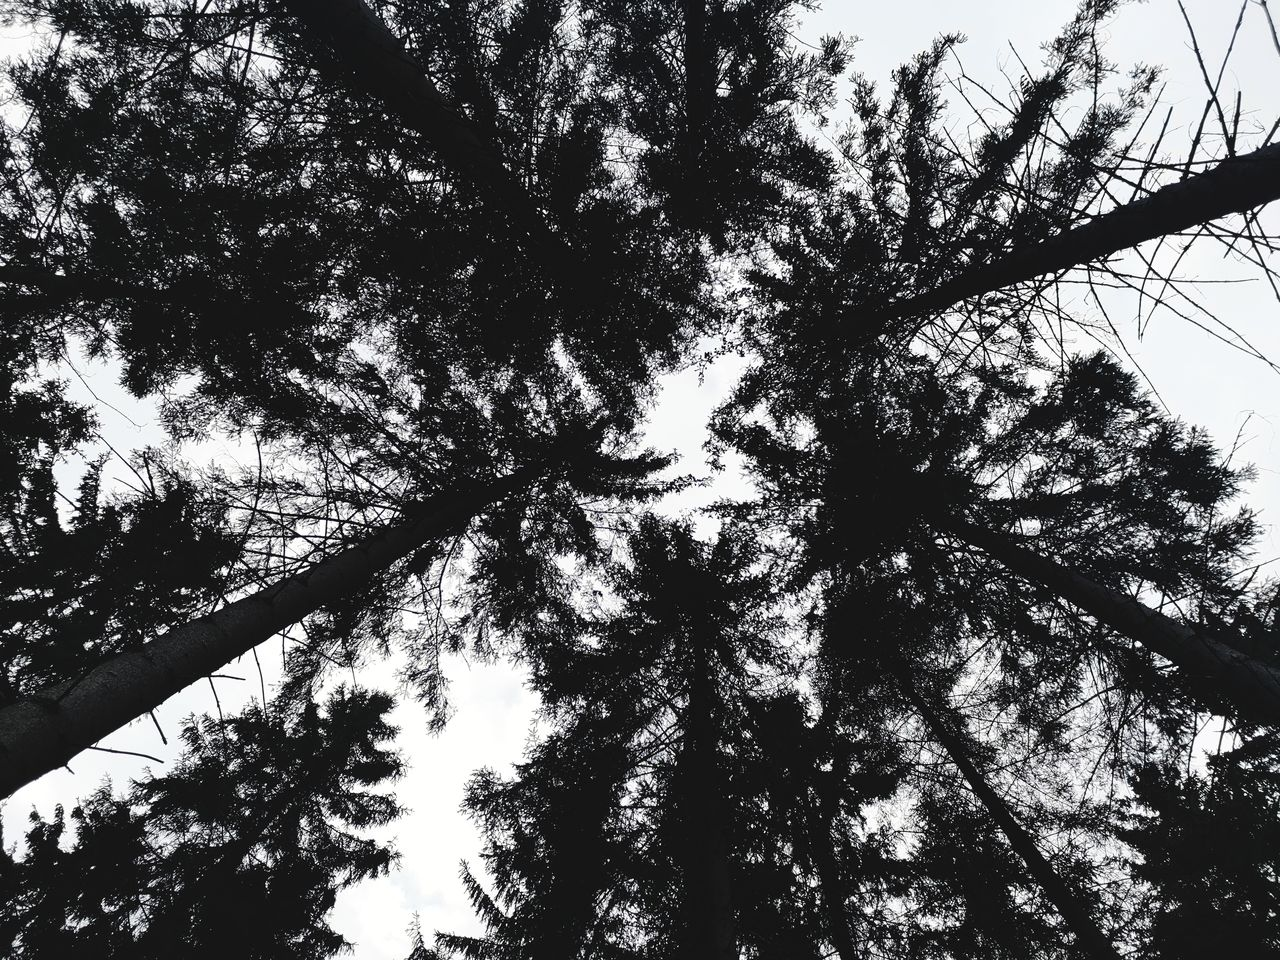 tree, plant, low angle view, sky, growth, silhouette, no people, beauty in nature, nature, tranquility, tree trunk, trunk, day, outdoors, tall - high, branch, tree canopy, forest, backgrounds, directly below